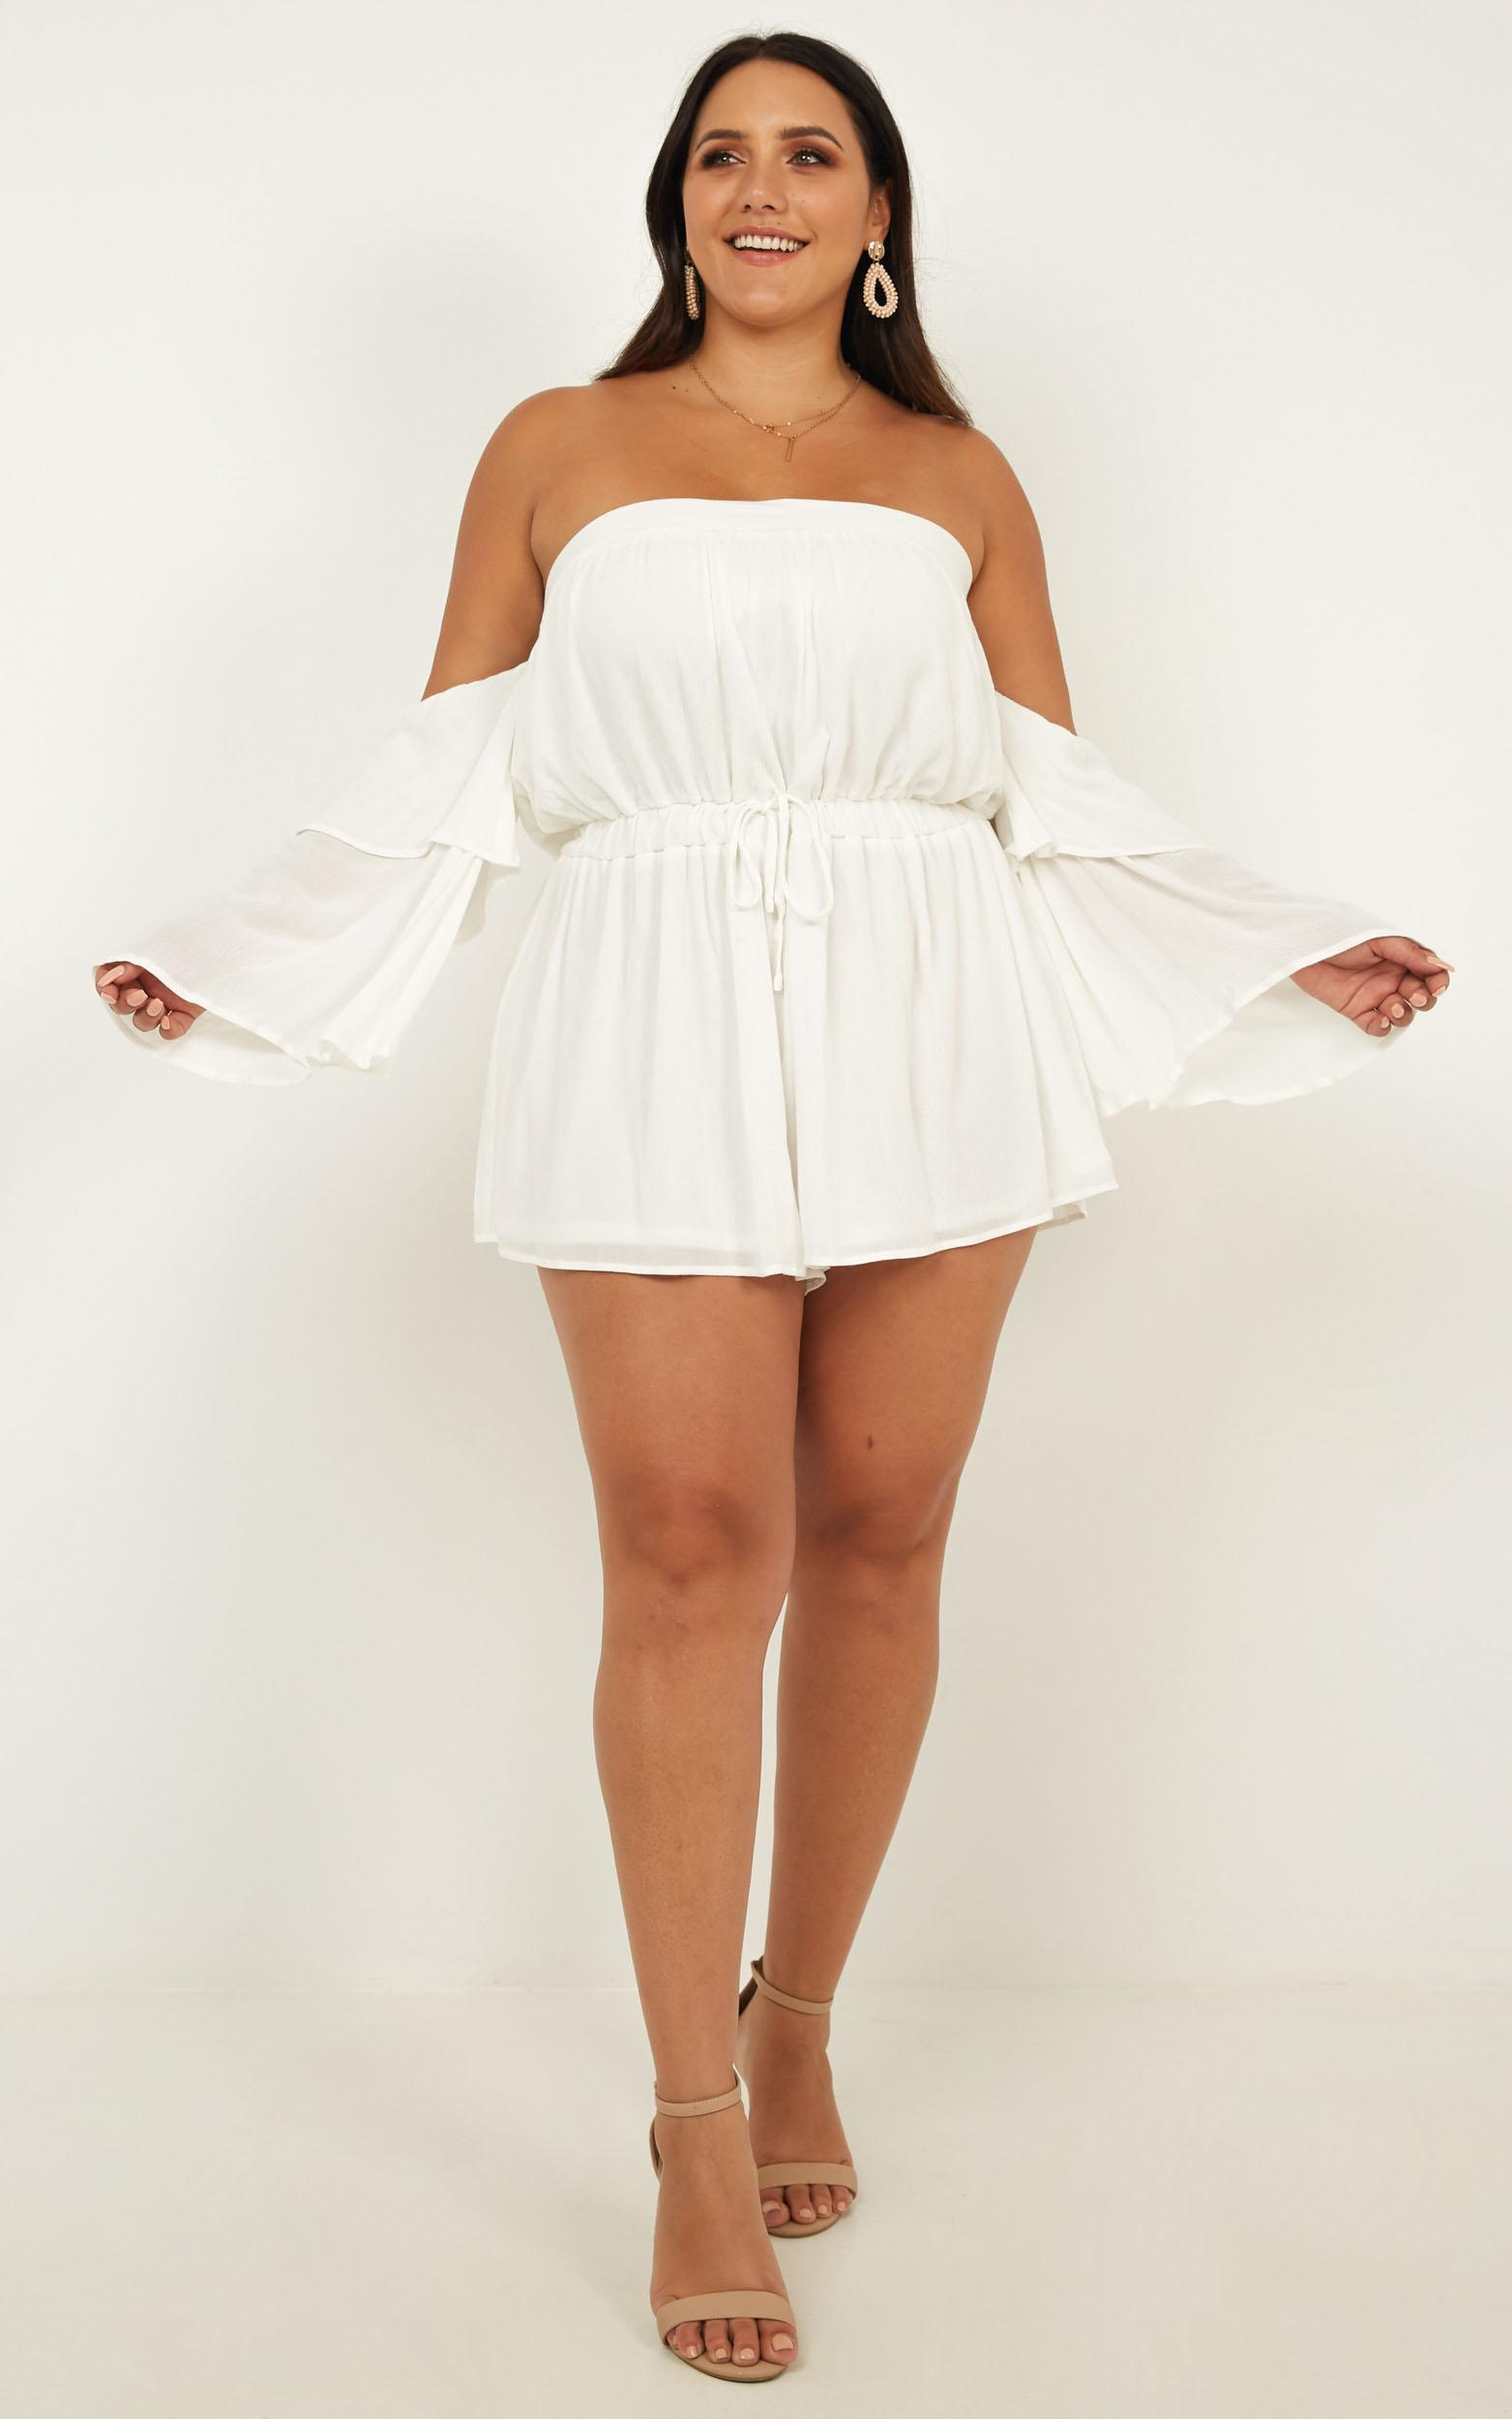 Keeping Me Playsuit in white - 20 (XXXXL), White, hi-res image number null